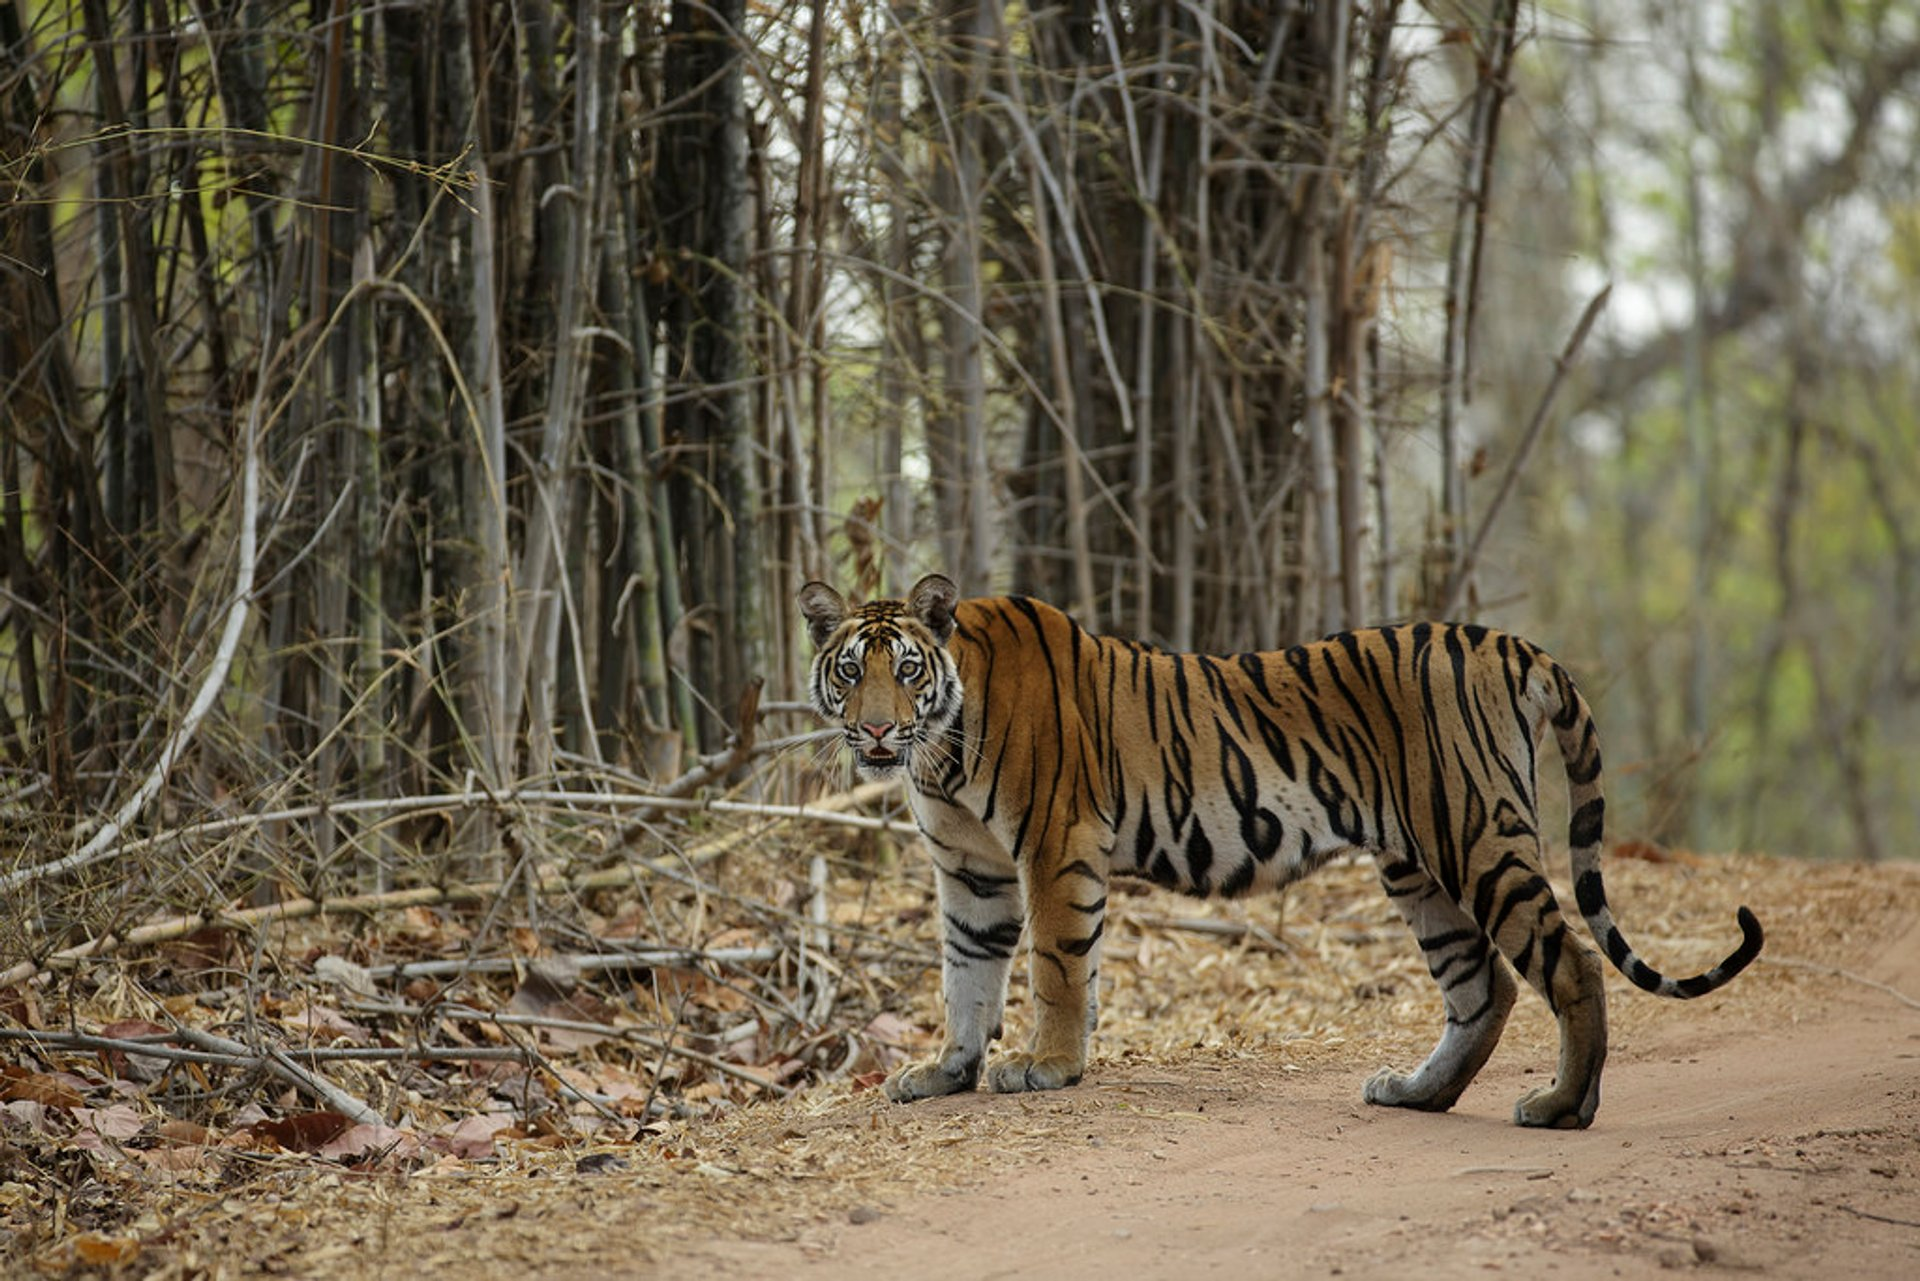 Sub adult tiger spotted in the Bandhavgarh National Park 2020